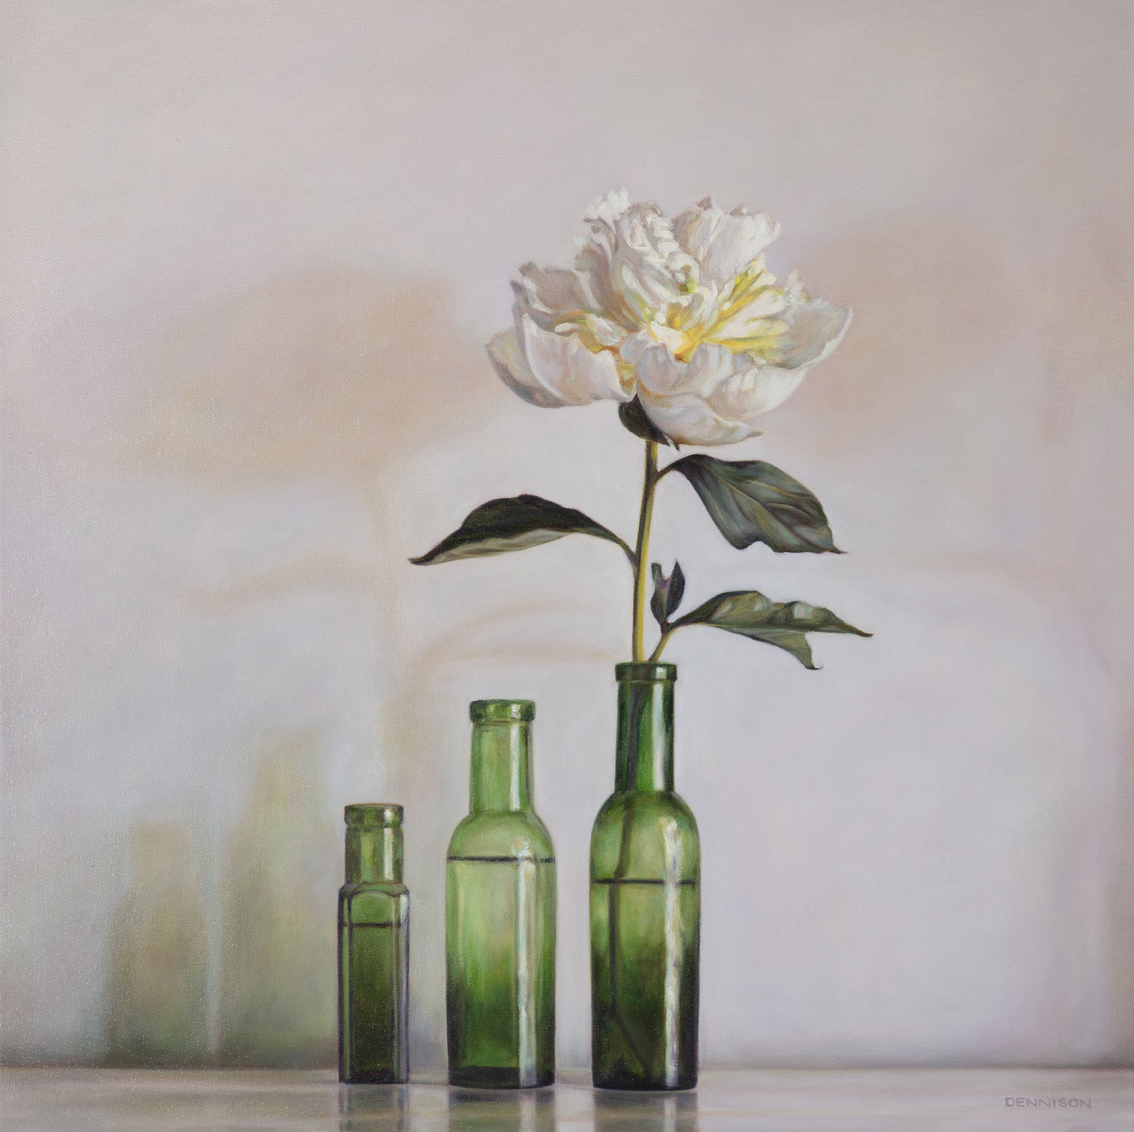 White Peony and Green Bottles   Oil on Canvas. 60 x 60cm, $1900